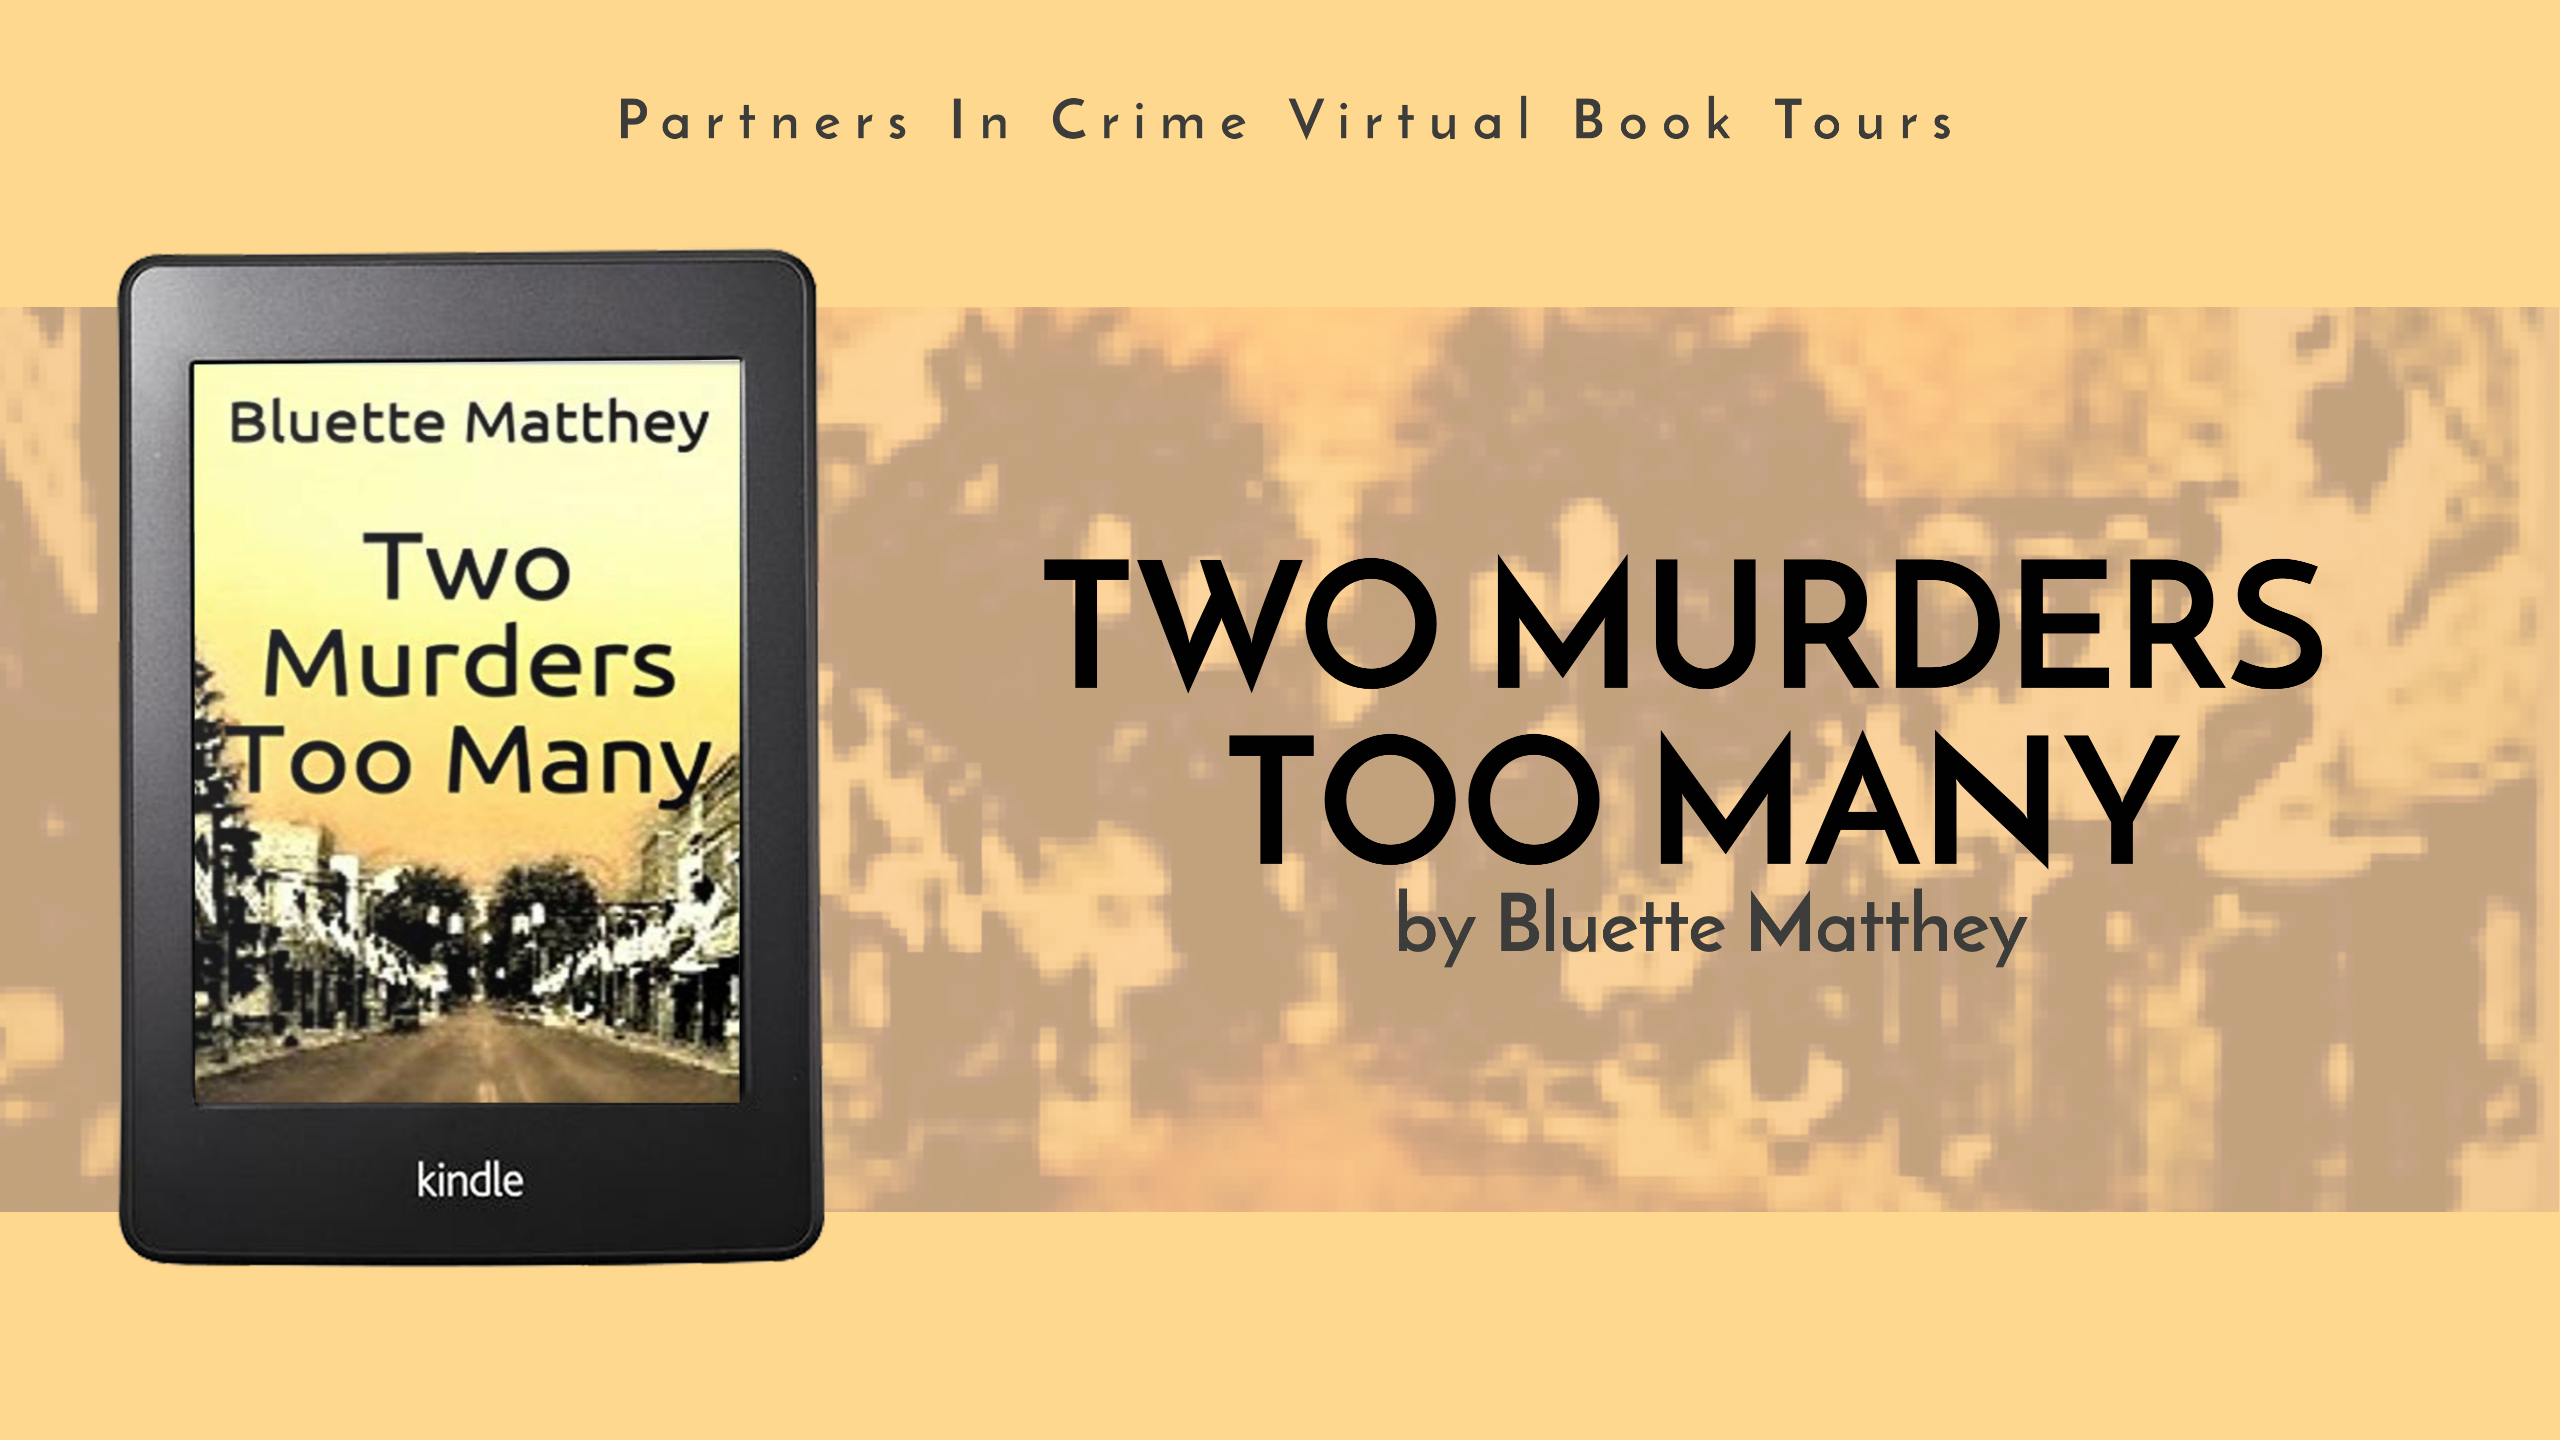 Two Murders Too Many Tour Banne